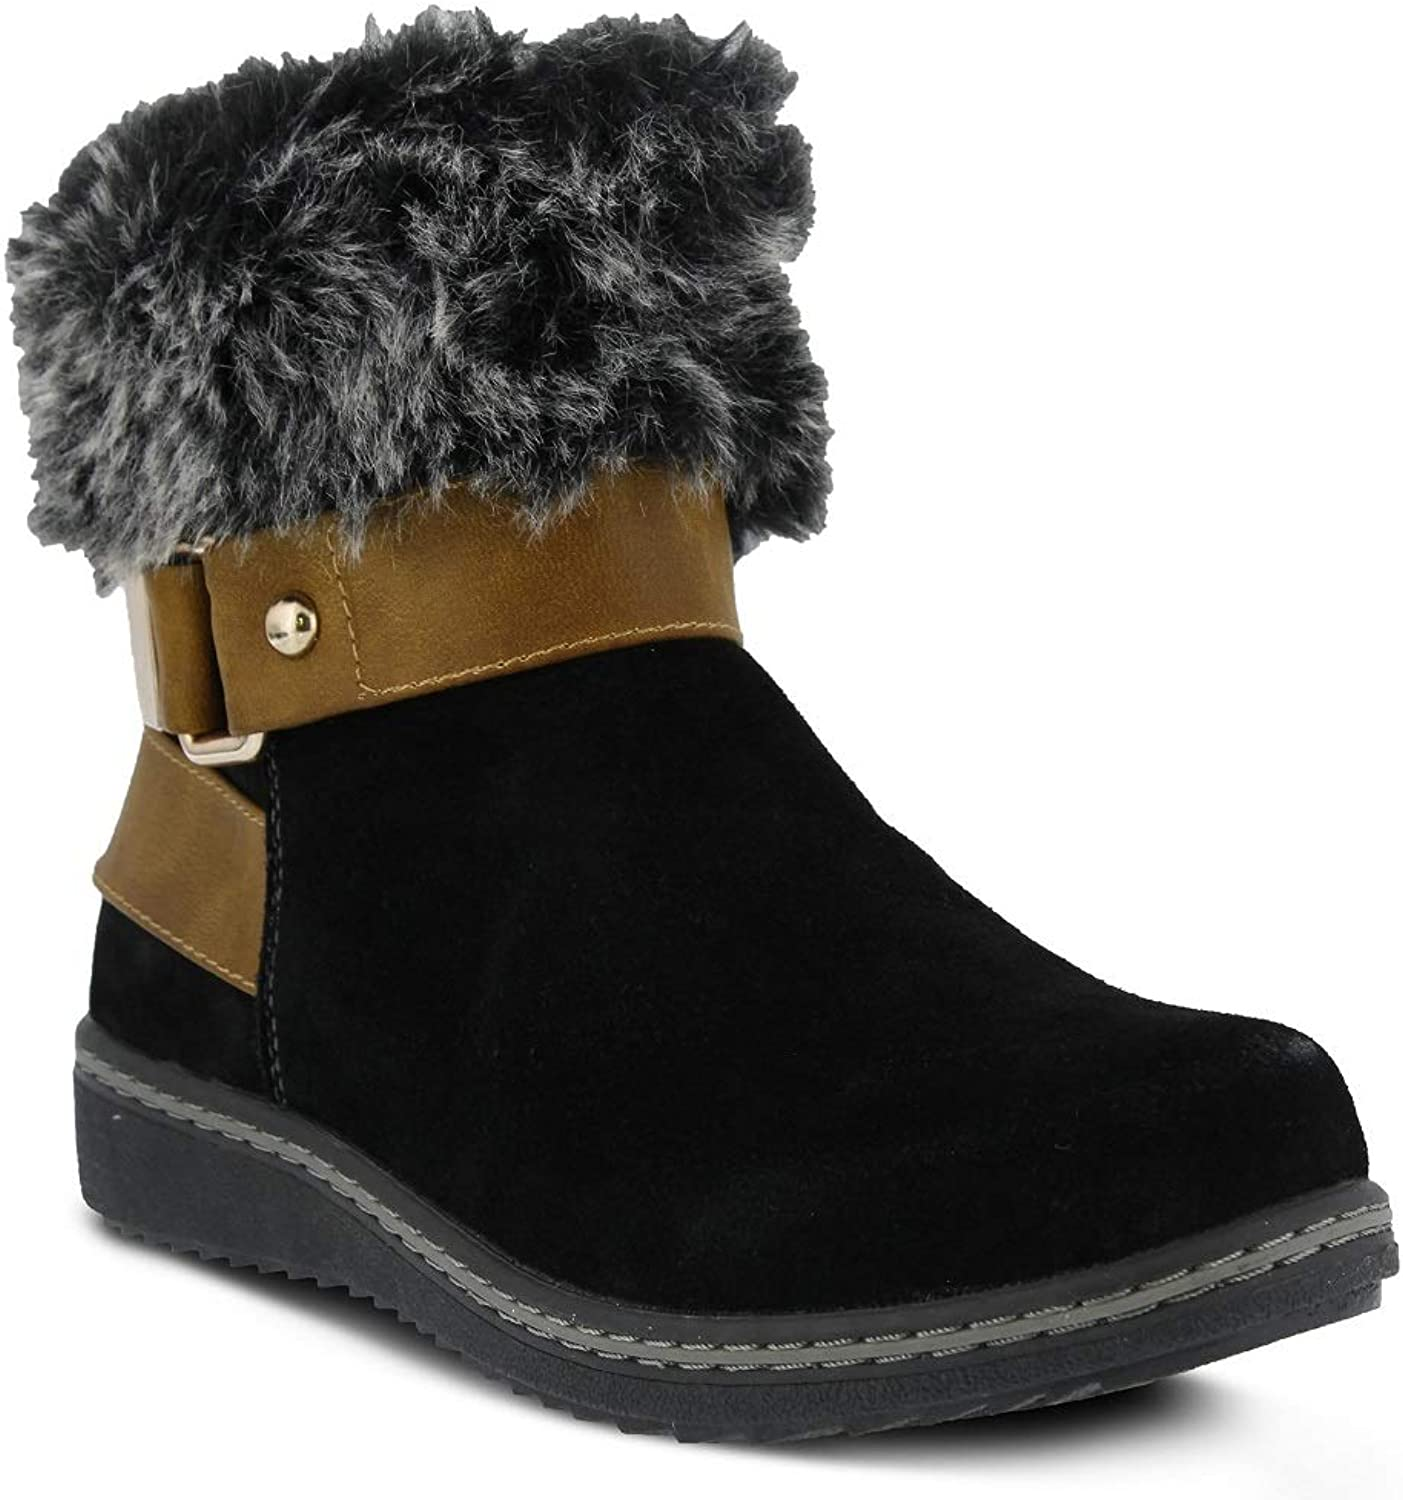 Spring Step Women's Popsicle Bootie   color Black   Suede Bootie